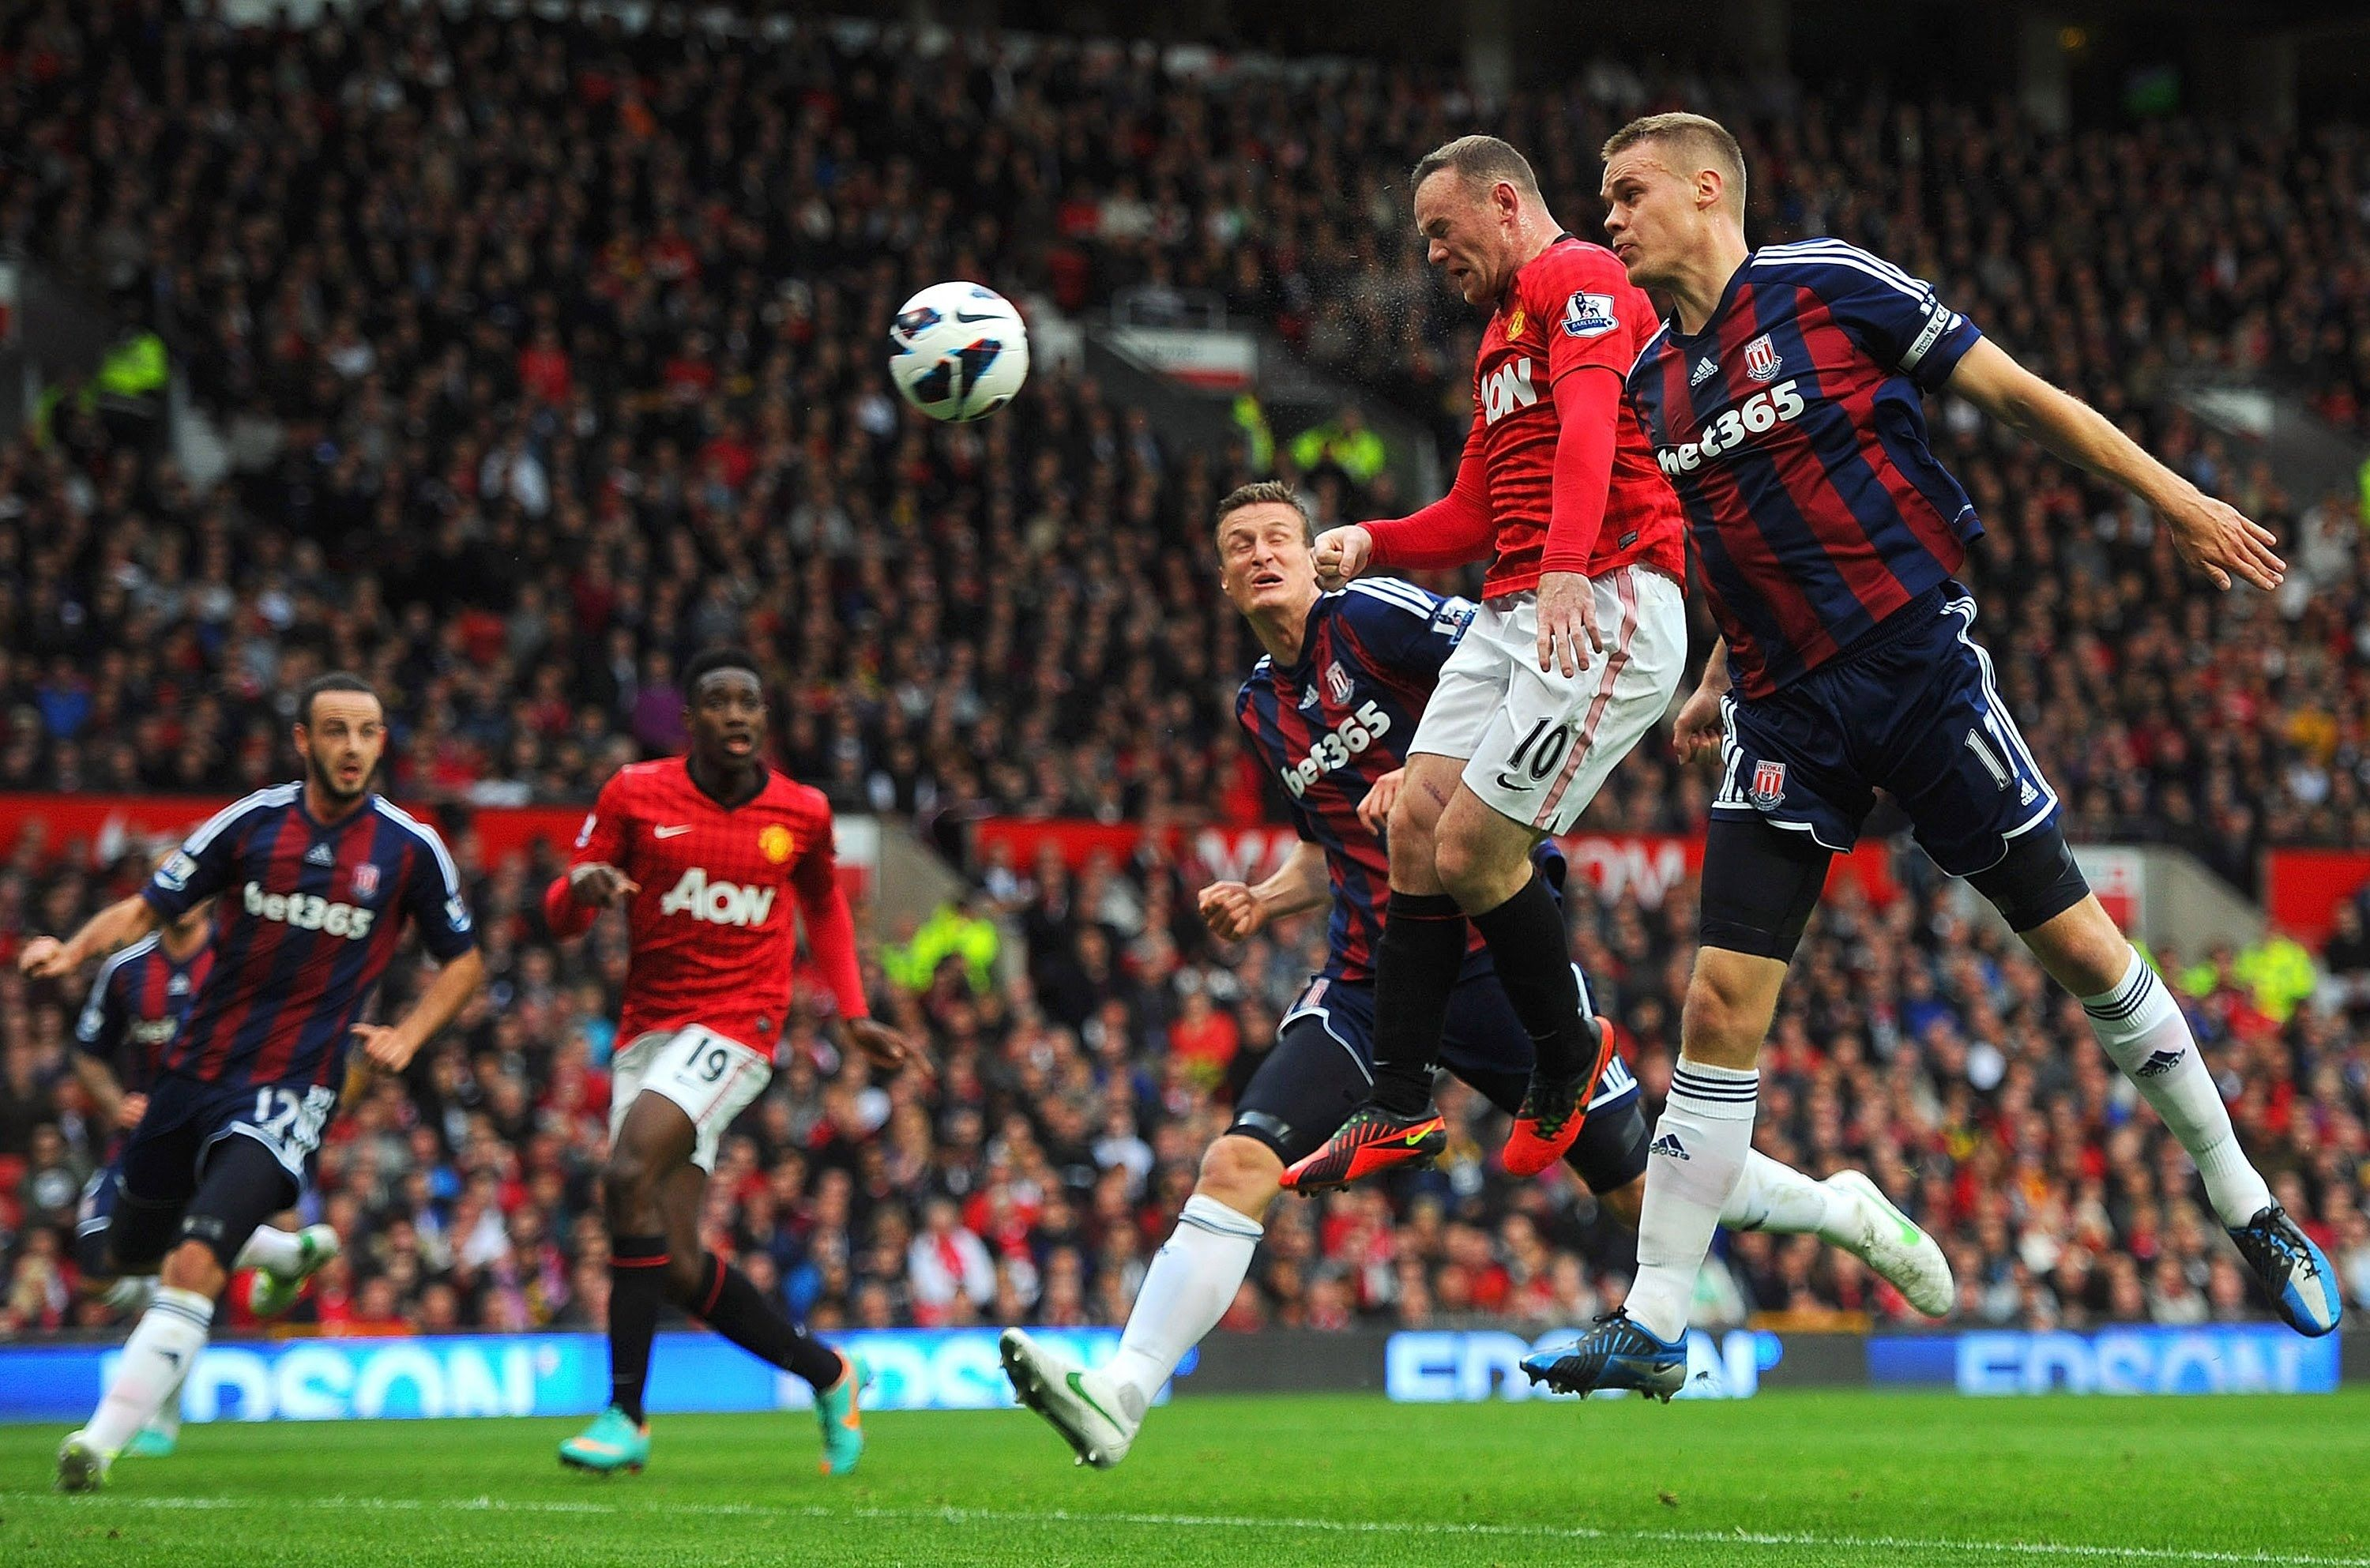 Manchester United Vs Stoke City Match Preview Commentary Head To Head Live Streaming Broadcasts English Premier League Manchester United Stoke City